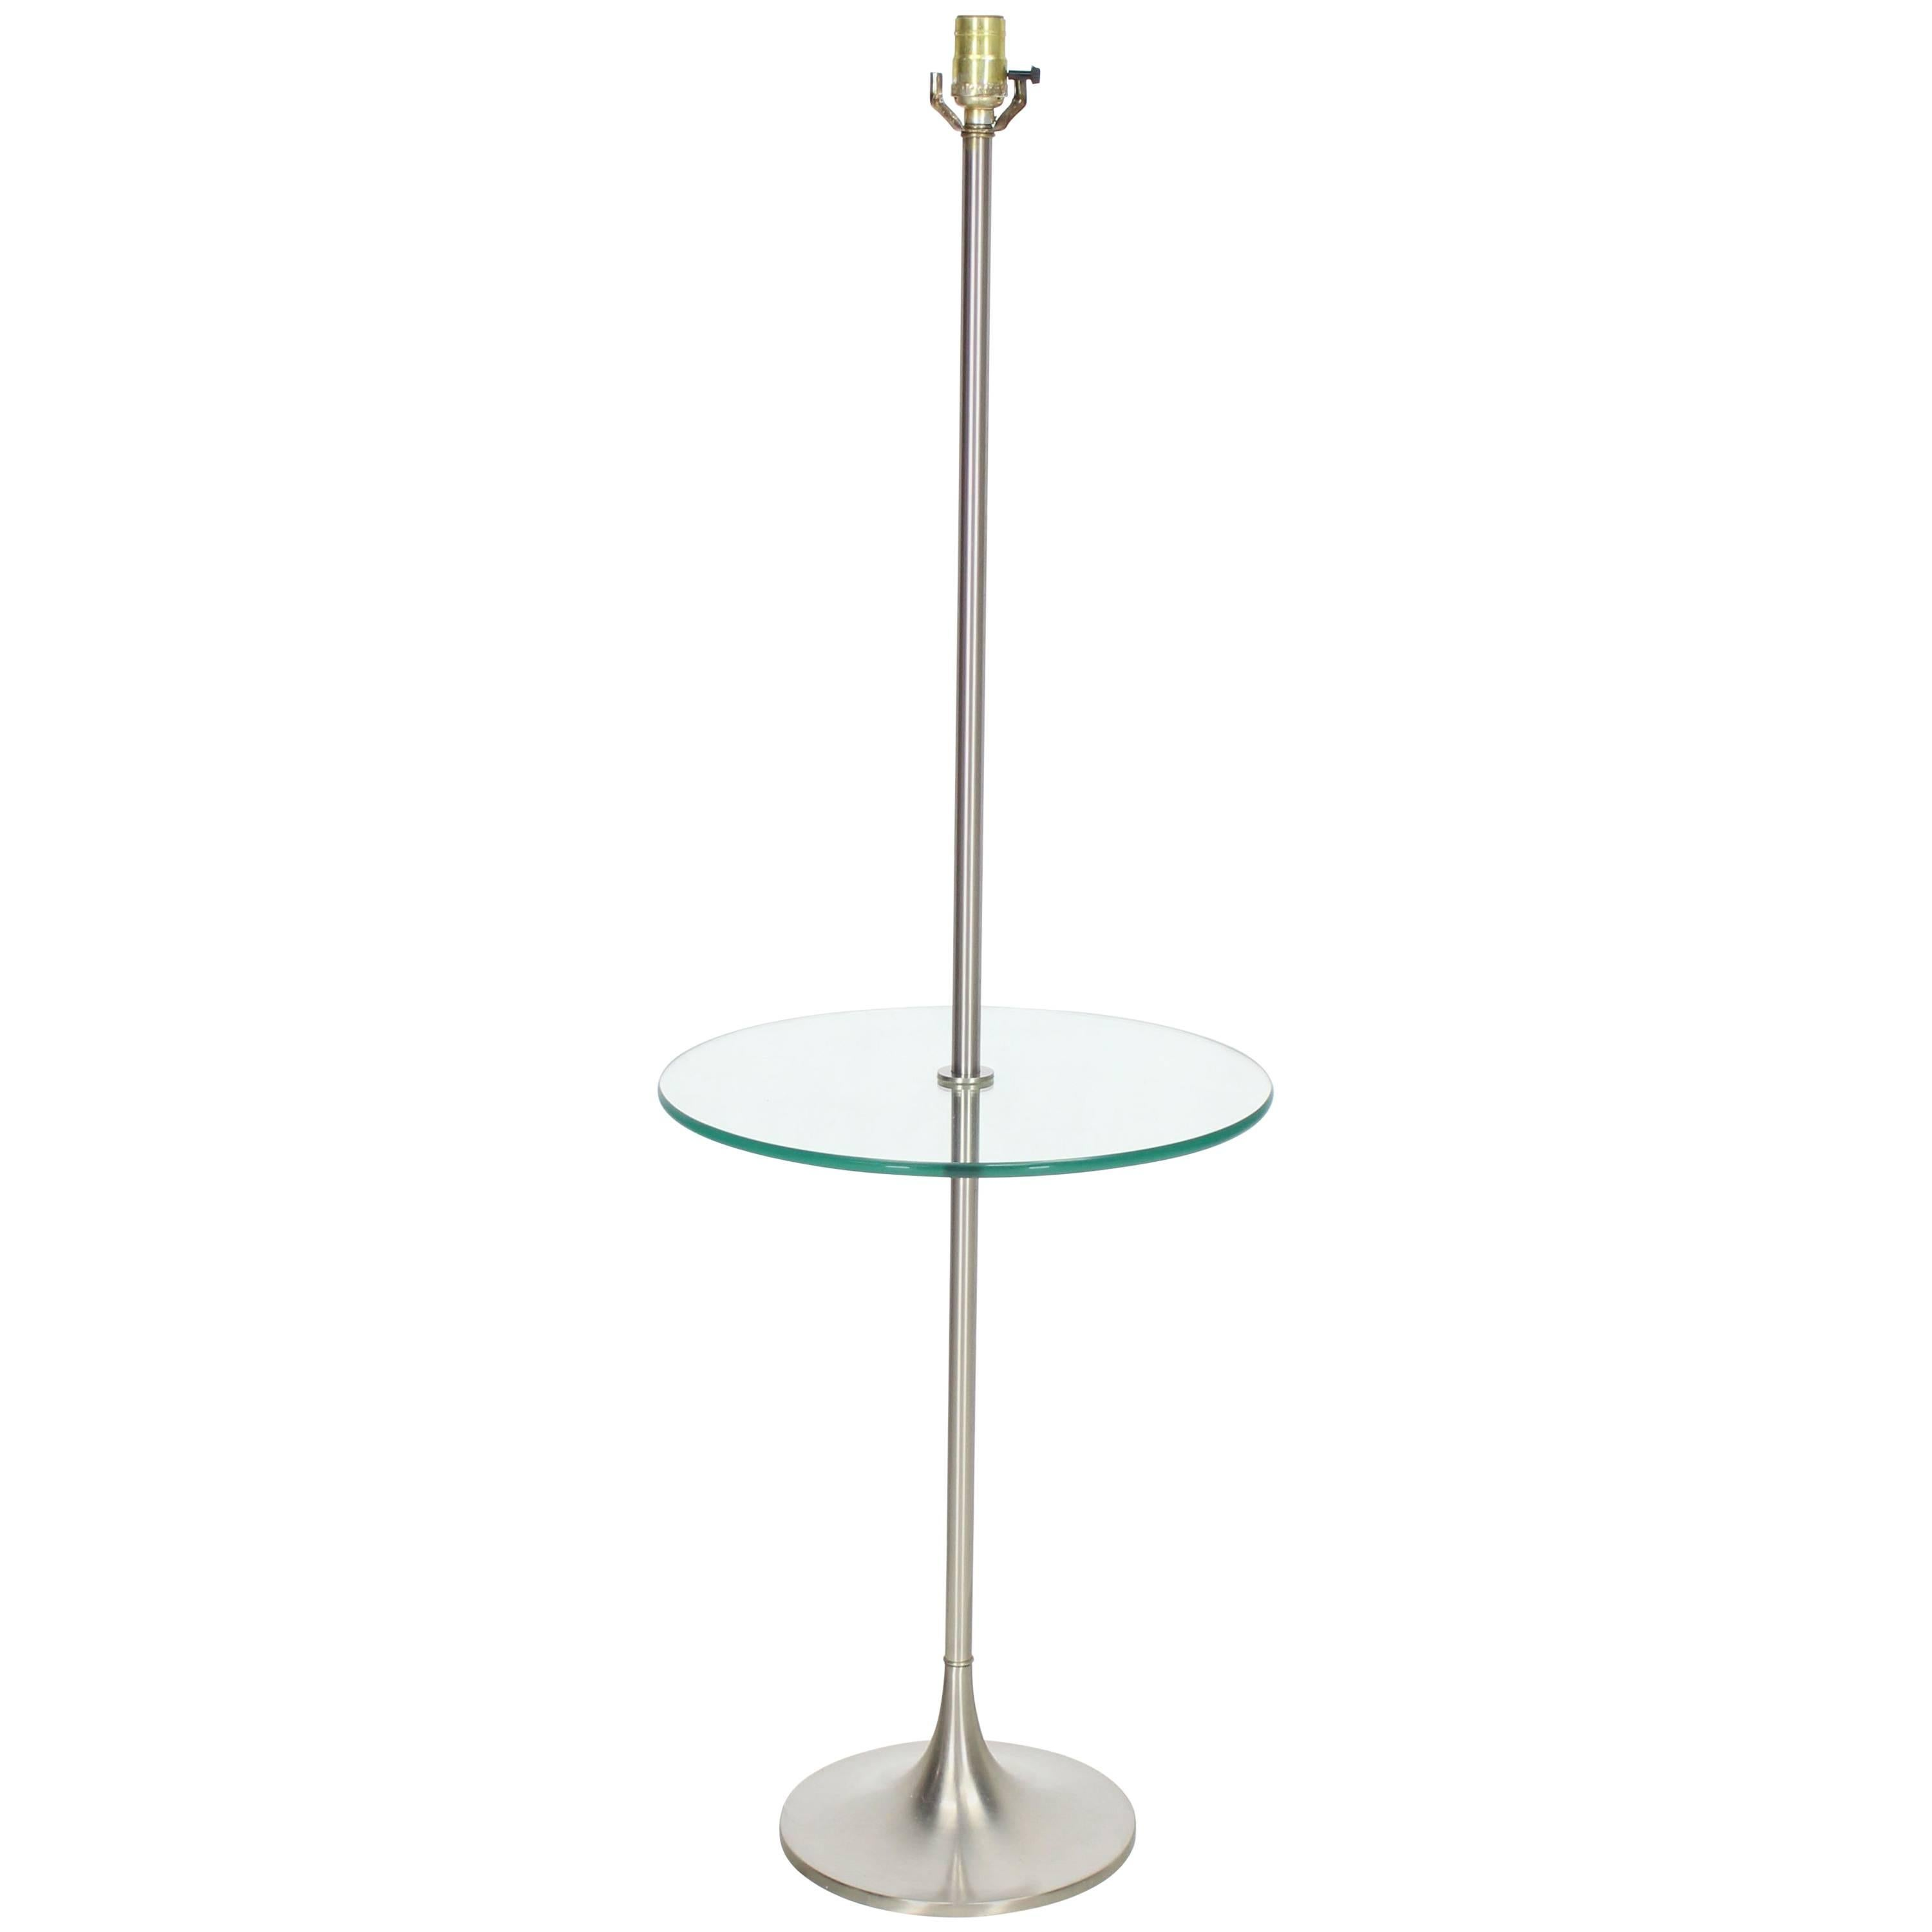 Brushed Finish Metal Glass Built in Table Floor Lamp